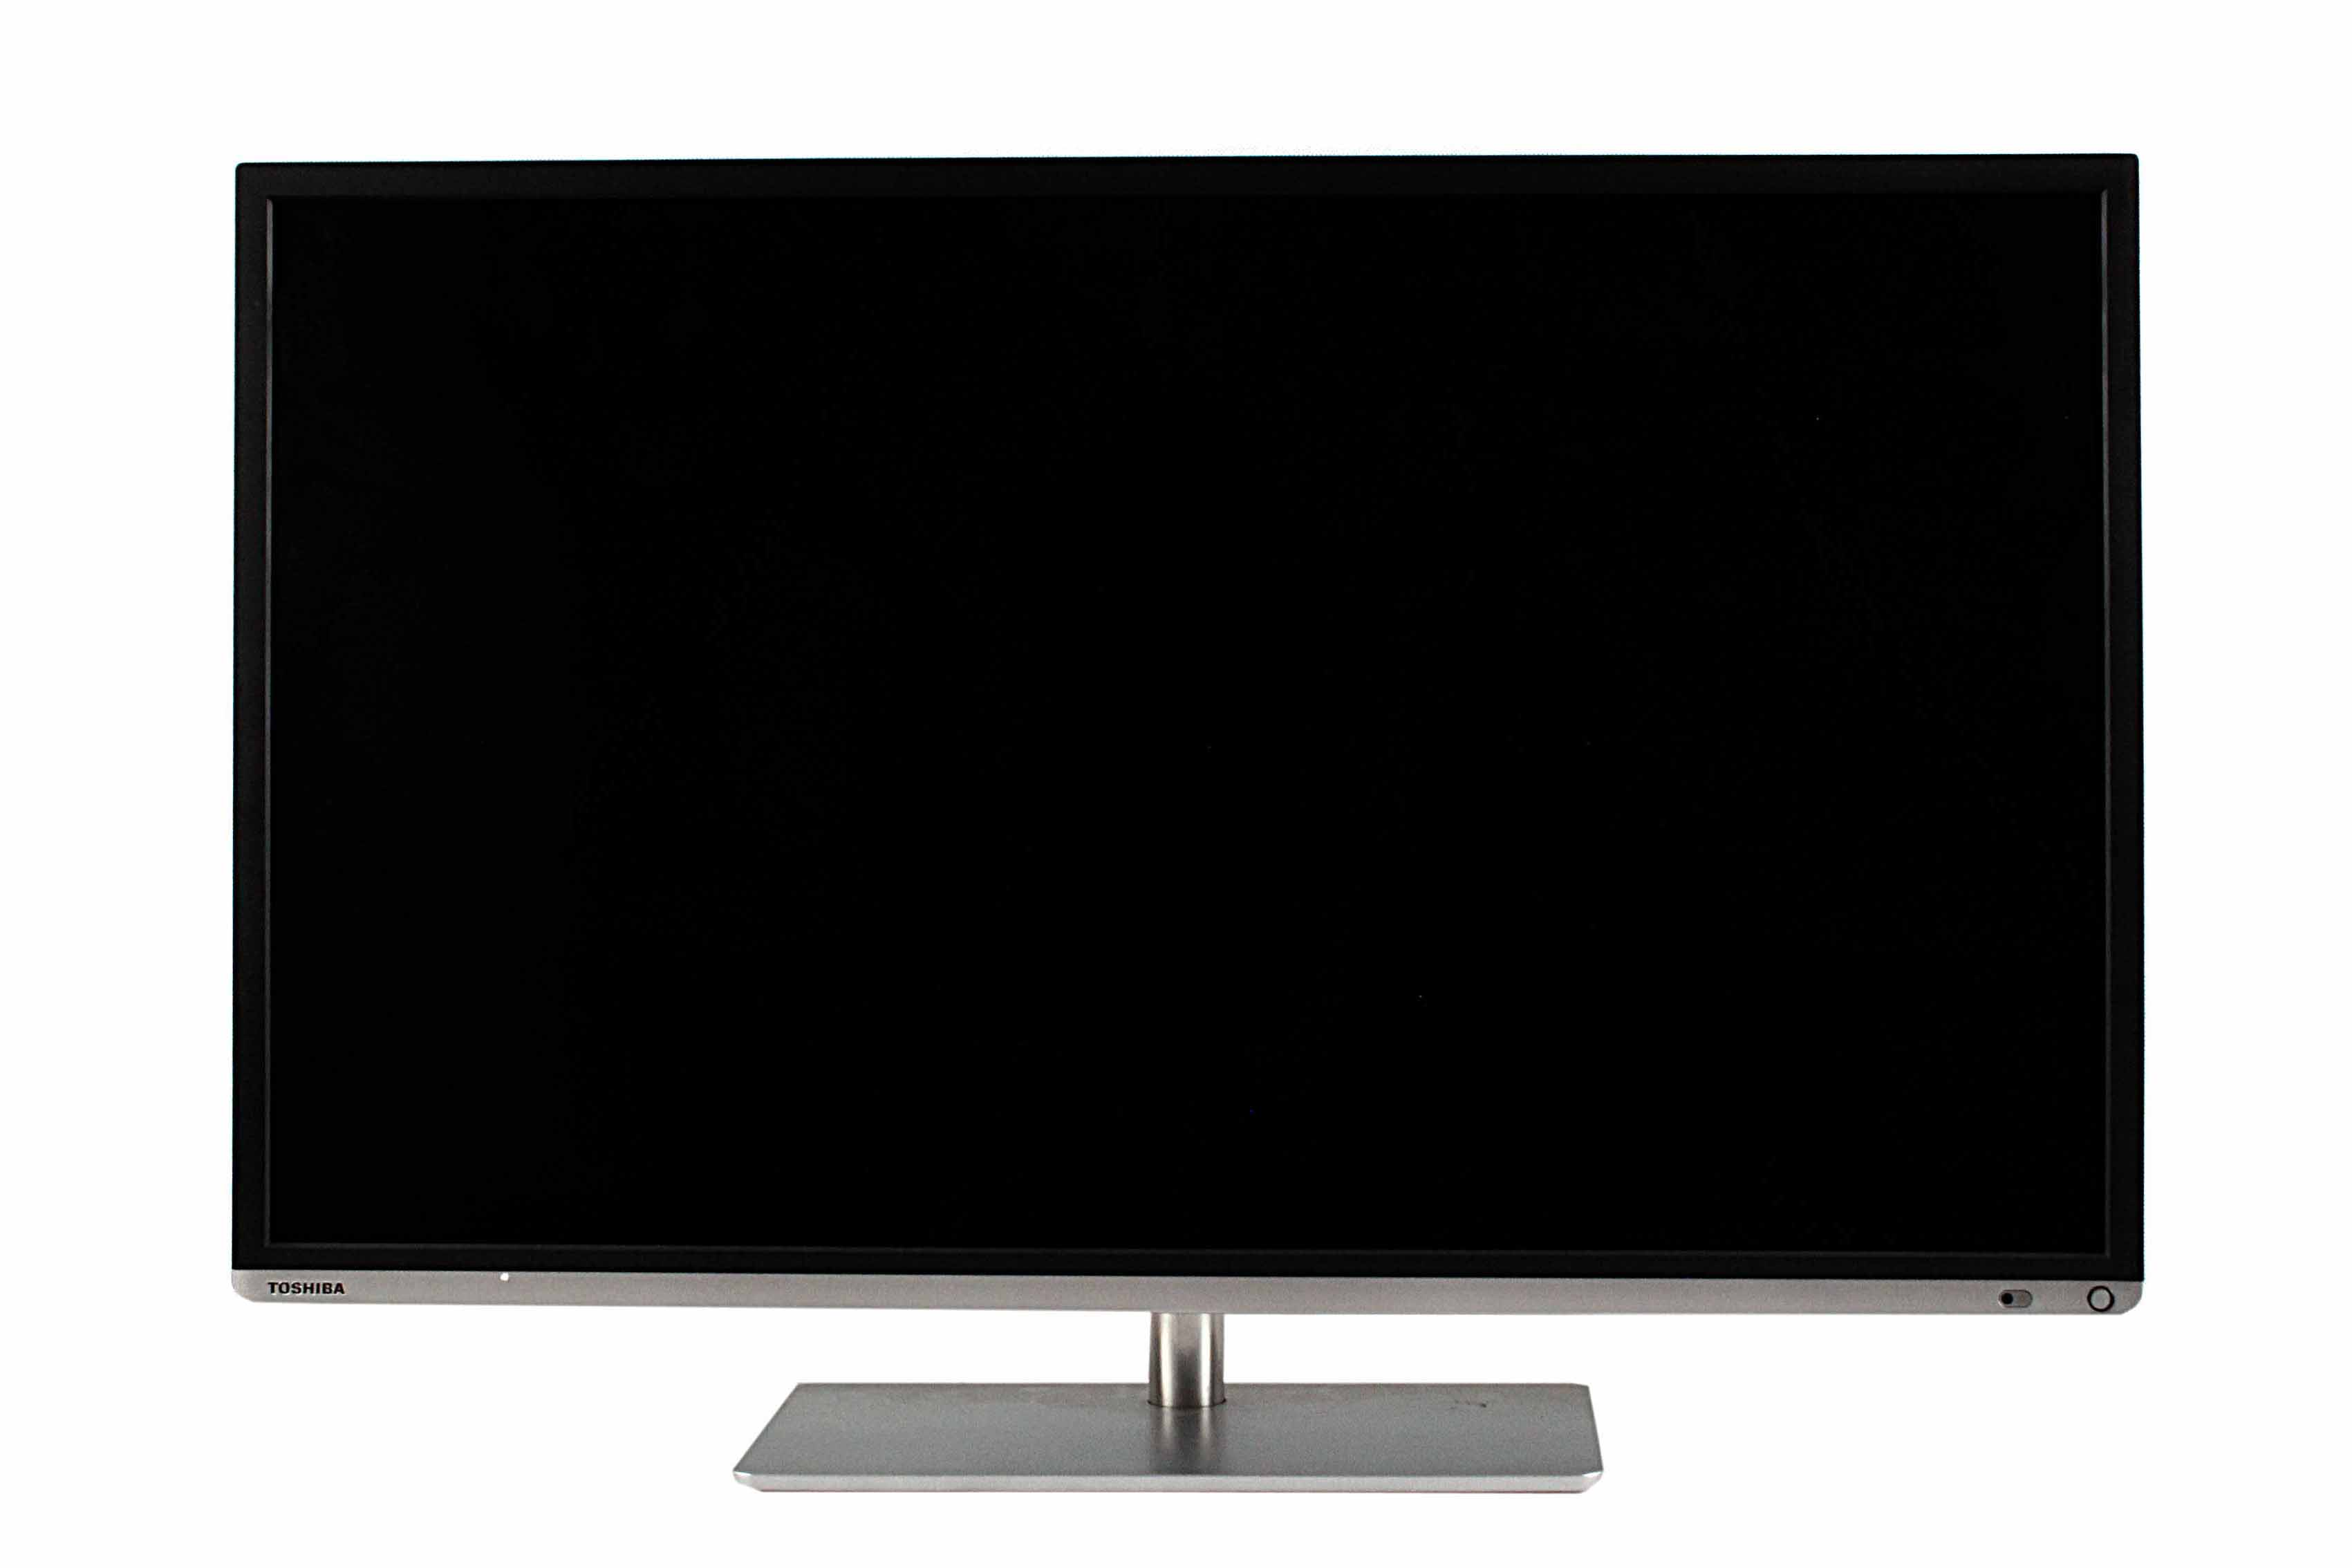 LED телевизор Toshiba Real Brand Technics 12999.000